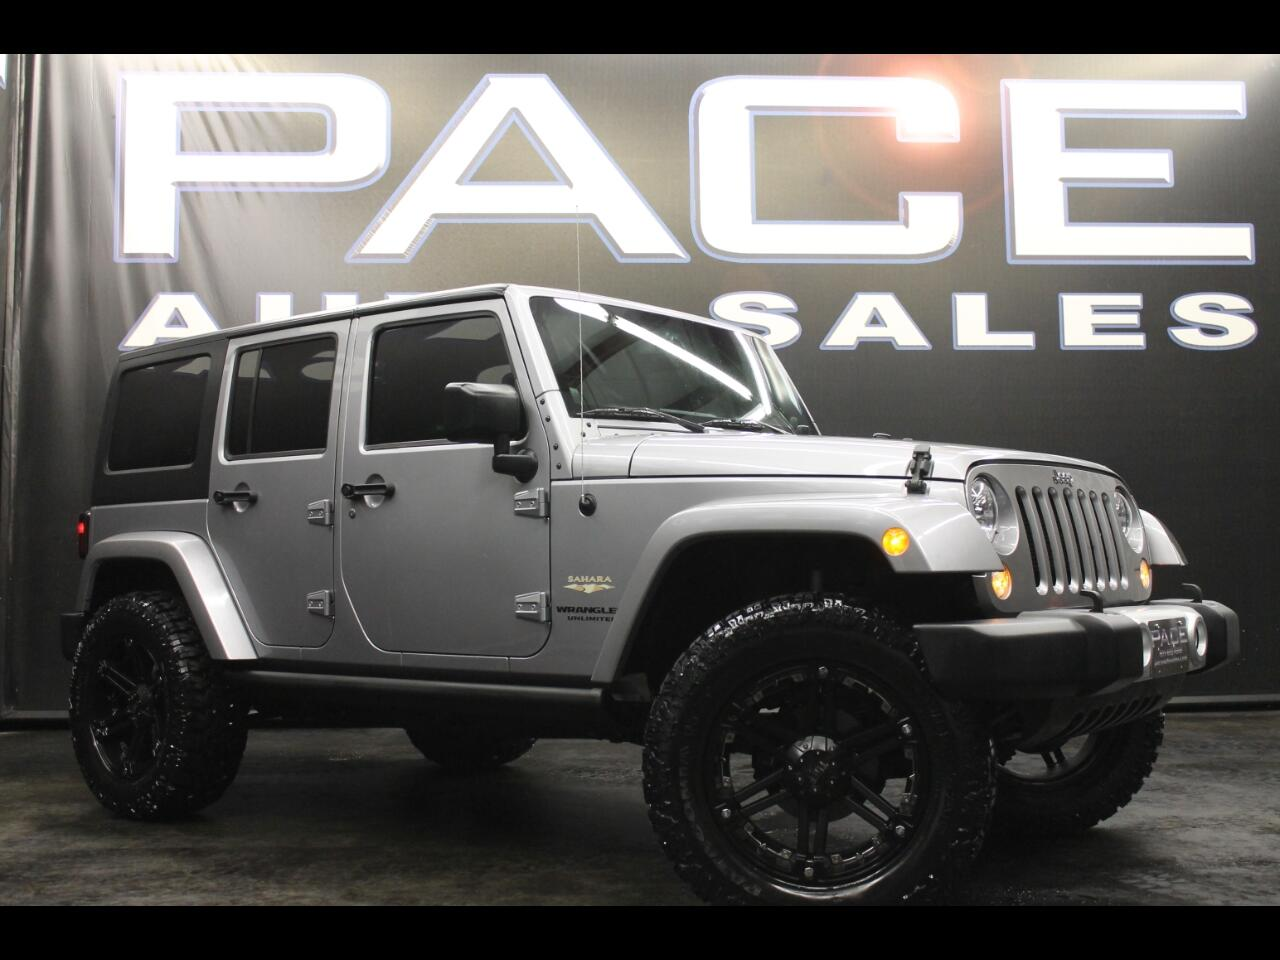 2014 Jeep Wrangler Unlimited 4WD 4dr Sahara Lifted Custom